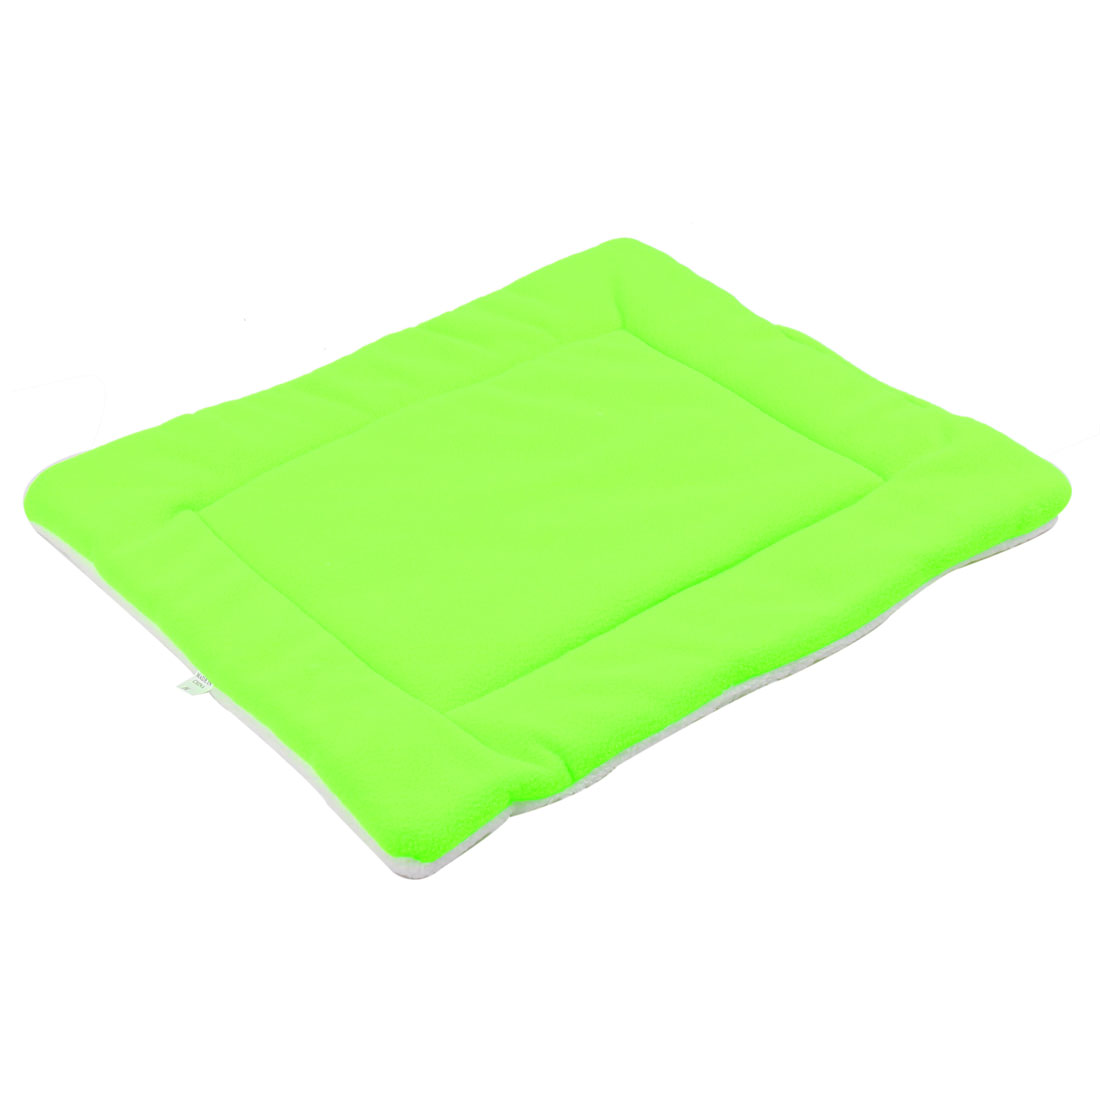 Pets Dogs Cats Indoor Blanket Sleeping Bed Sitting Mat Pad